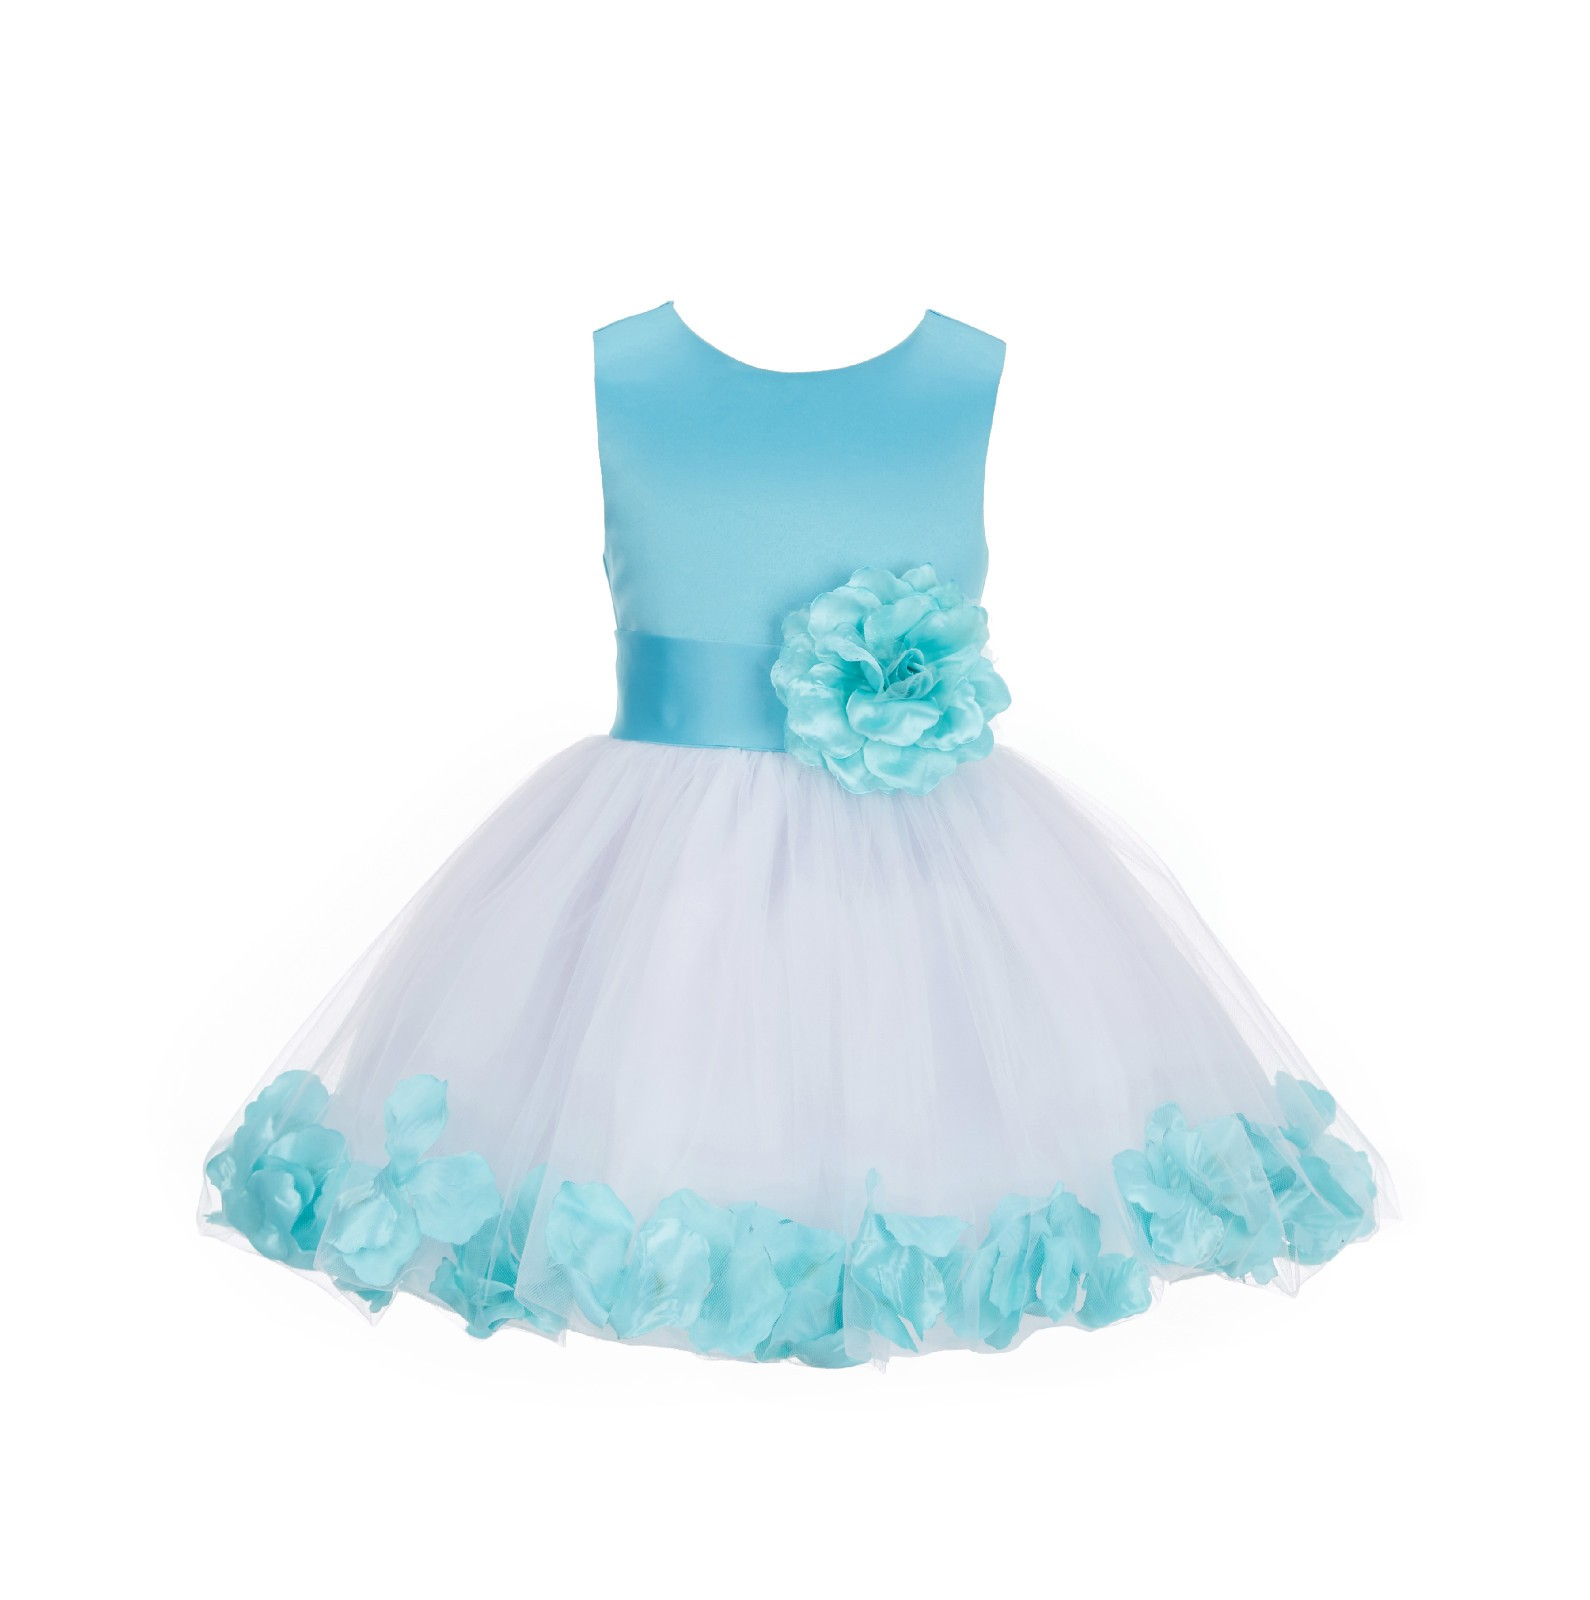 Tiffany Rose Petals Tulle Flower Girl Dress Formal Wear 305ns Sash